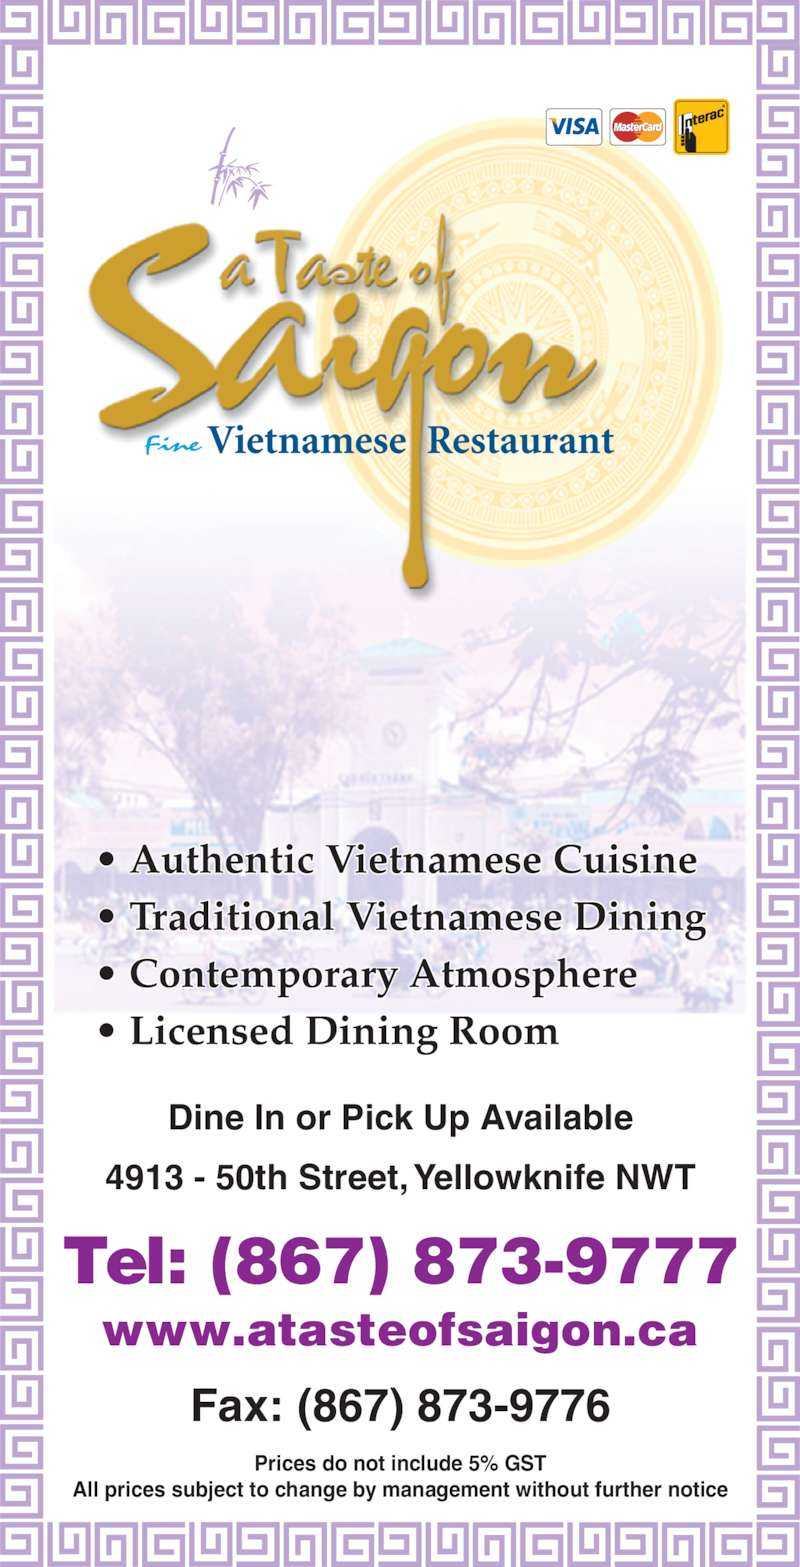 A Taste Of Saigon (867-873-9777) - Display Ad - www.atasteofsaigon.ca Prices do not include 5% GST All prices subject to change by management without further notice • Authentic Vietnamese Cuisine • Traditional Vietnamese Dining • Contemporary Atmosphere 4913 - 50th Street, Yellowknife NWT Dine In or Pick Up Available Tel: (867) 873-9777 Fax: (867) 873-9776 • Licensed Dining Room